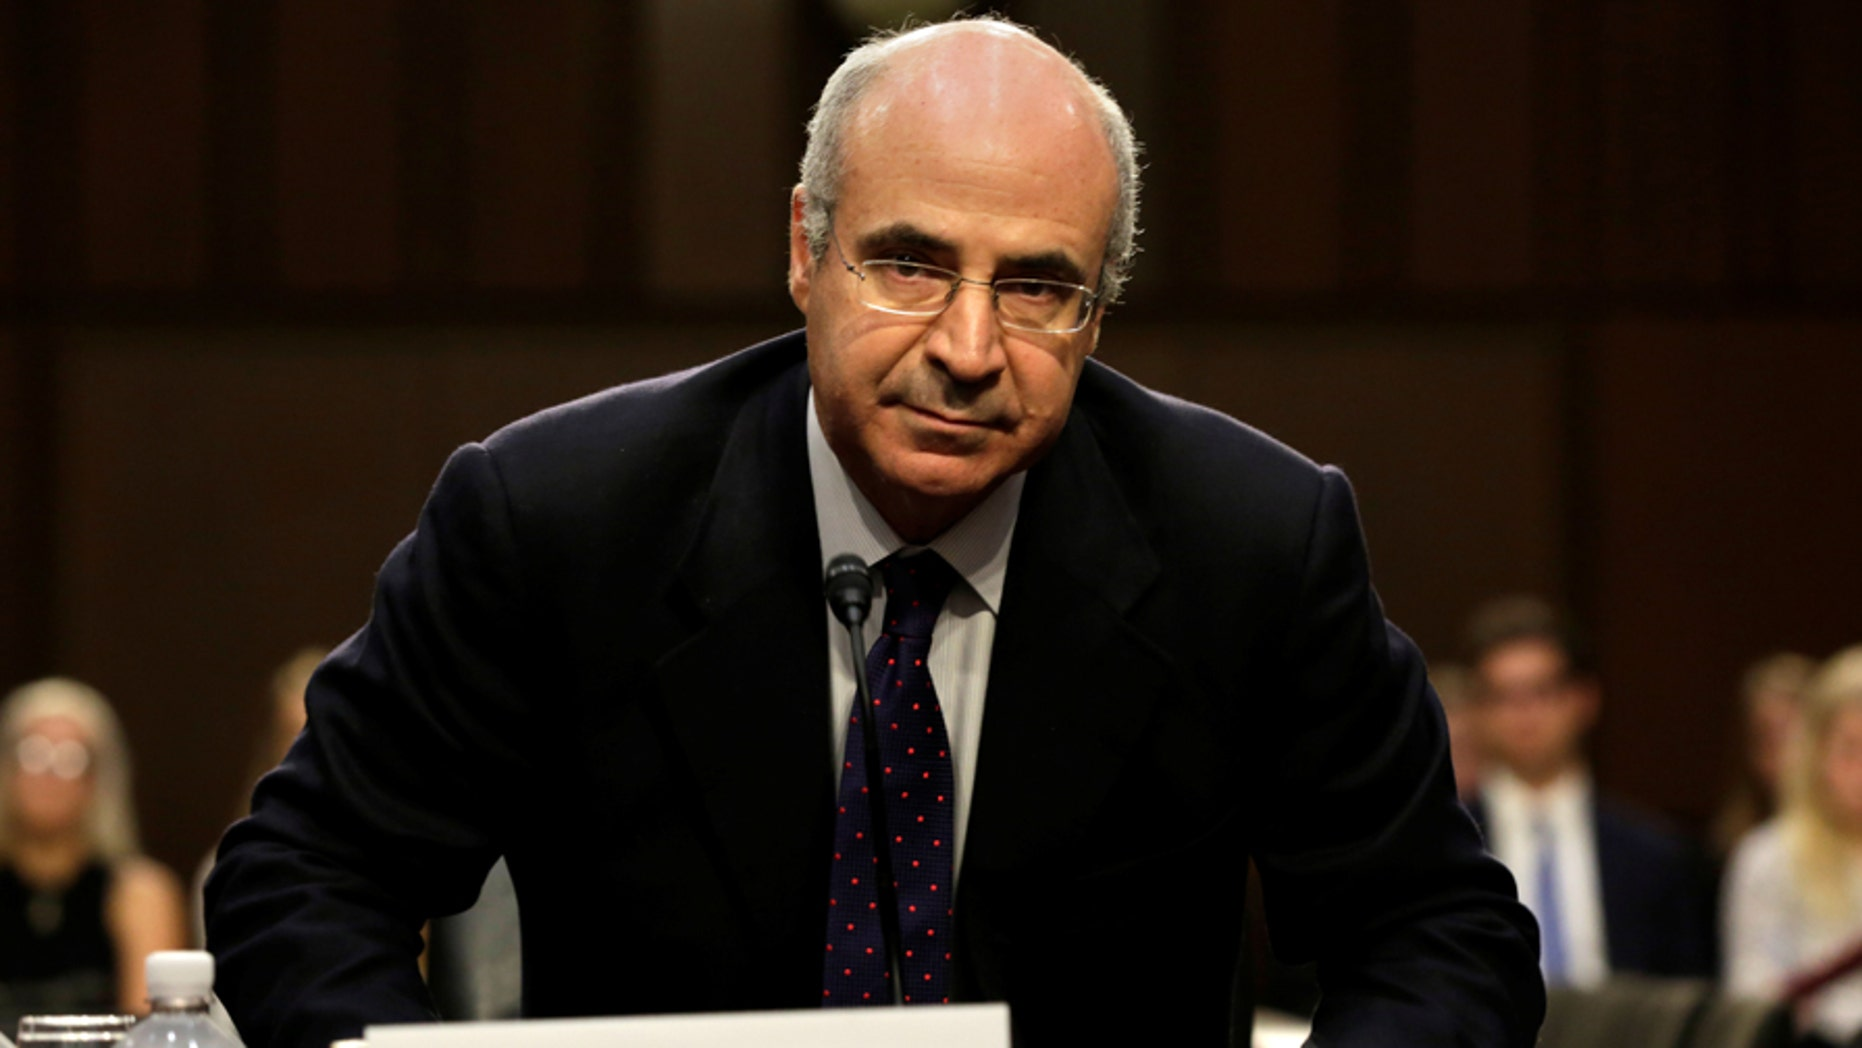 Hermitage Capital CEO William Browder arrives to testify before a continuation of Senate Judiciary Committee hearing on alleged Russian meddling in the 2016 presidential election on Capitol Hill in Washington, U.S., July 27, 2017. REUTERS/Yuri Gripas - RC1BC318DB40